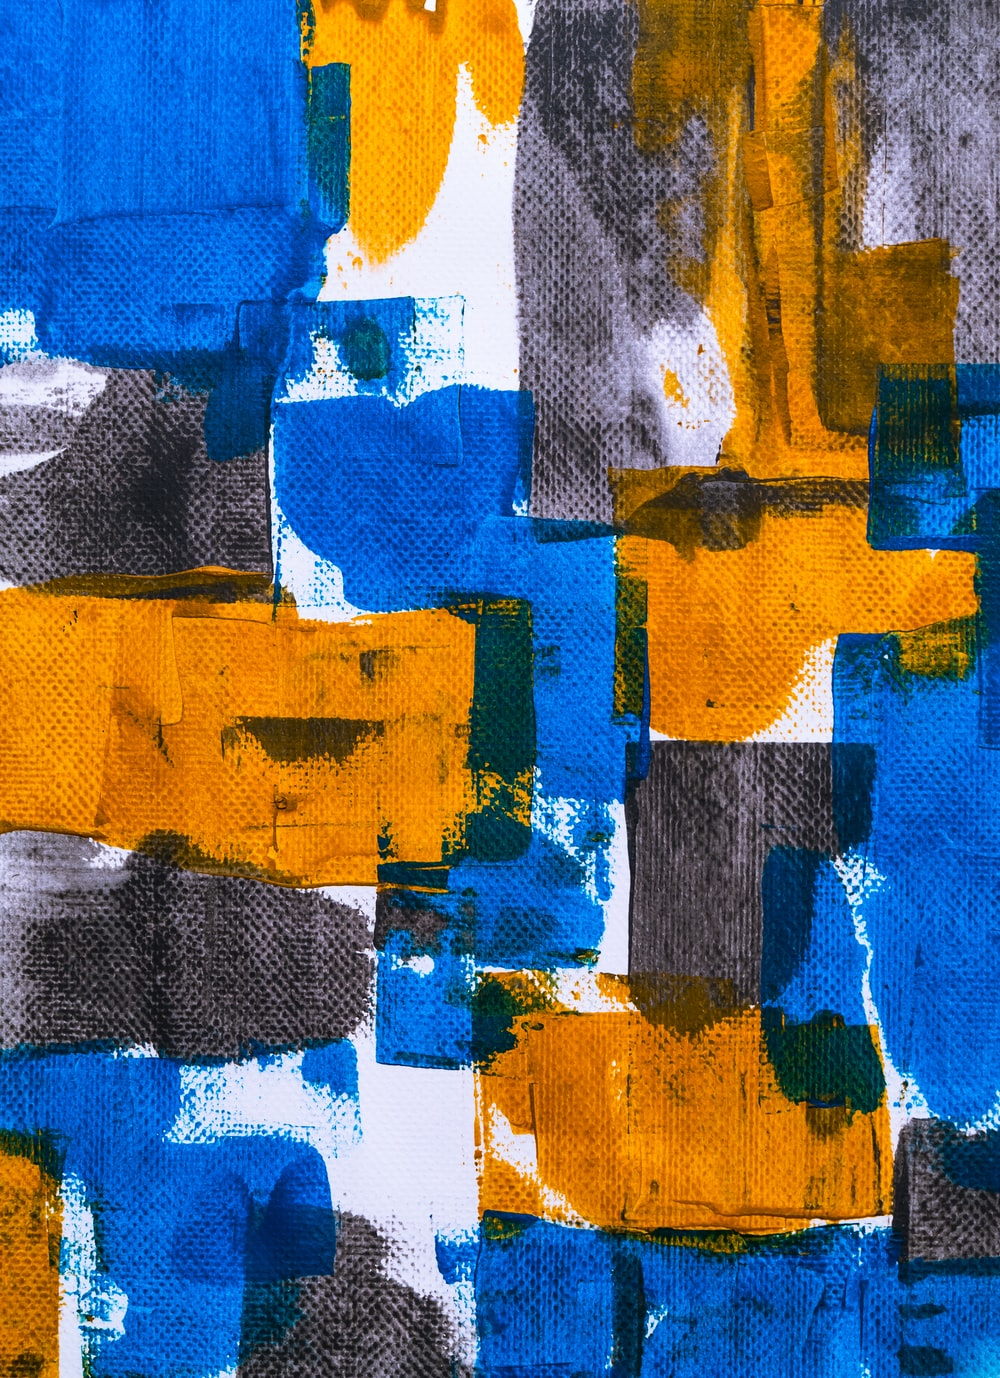 blue, orange, and gray abstract art